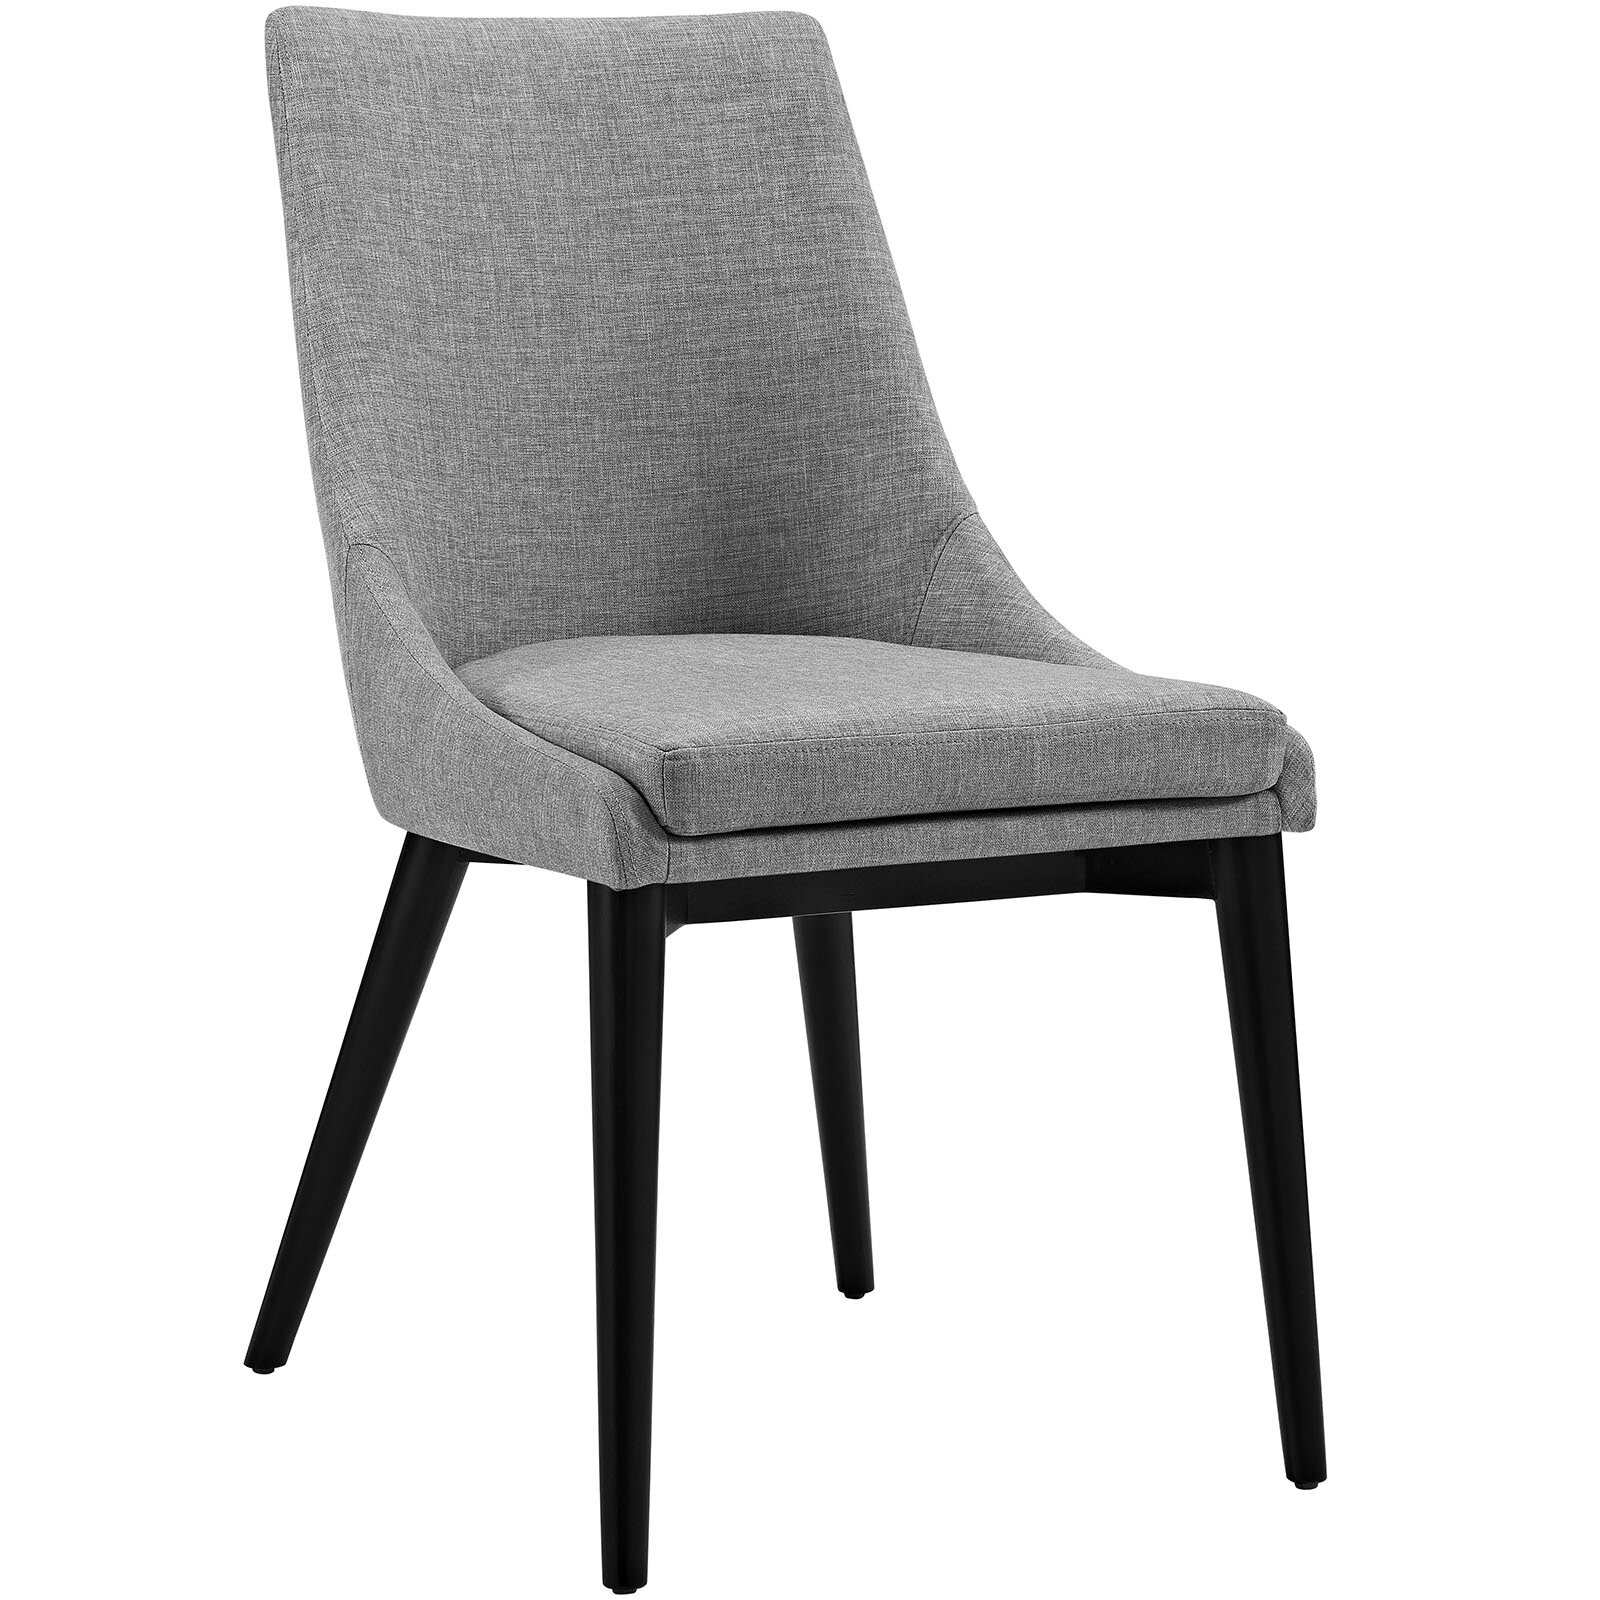 Carlton Wood Leg Upholstered Dining Chair With Carlton Wood Leg Upholstered Dining Chairs (View 2 of 15)